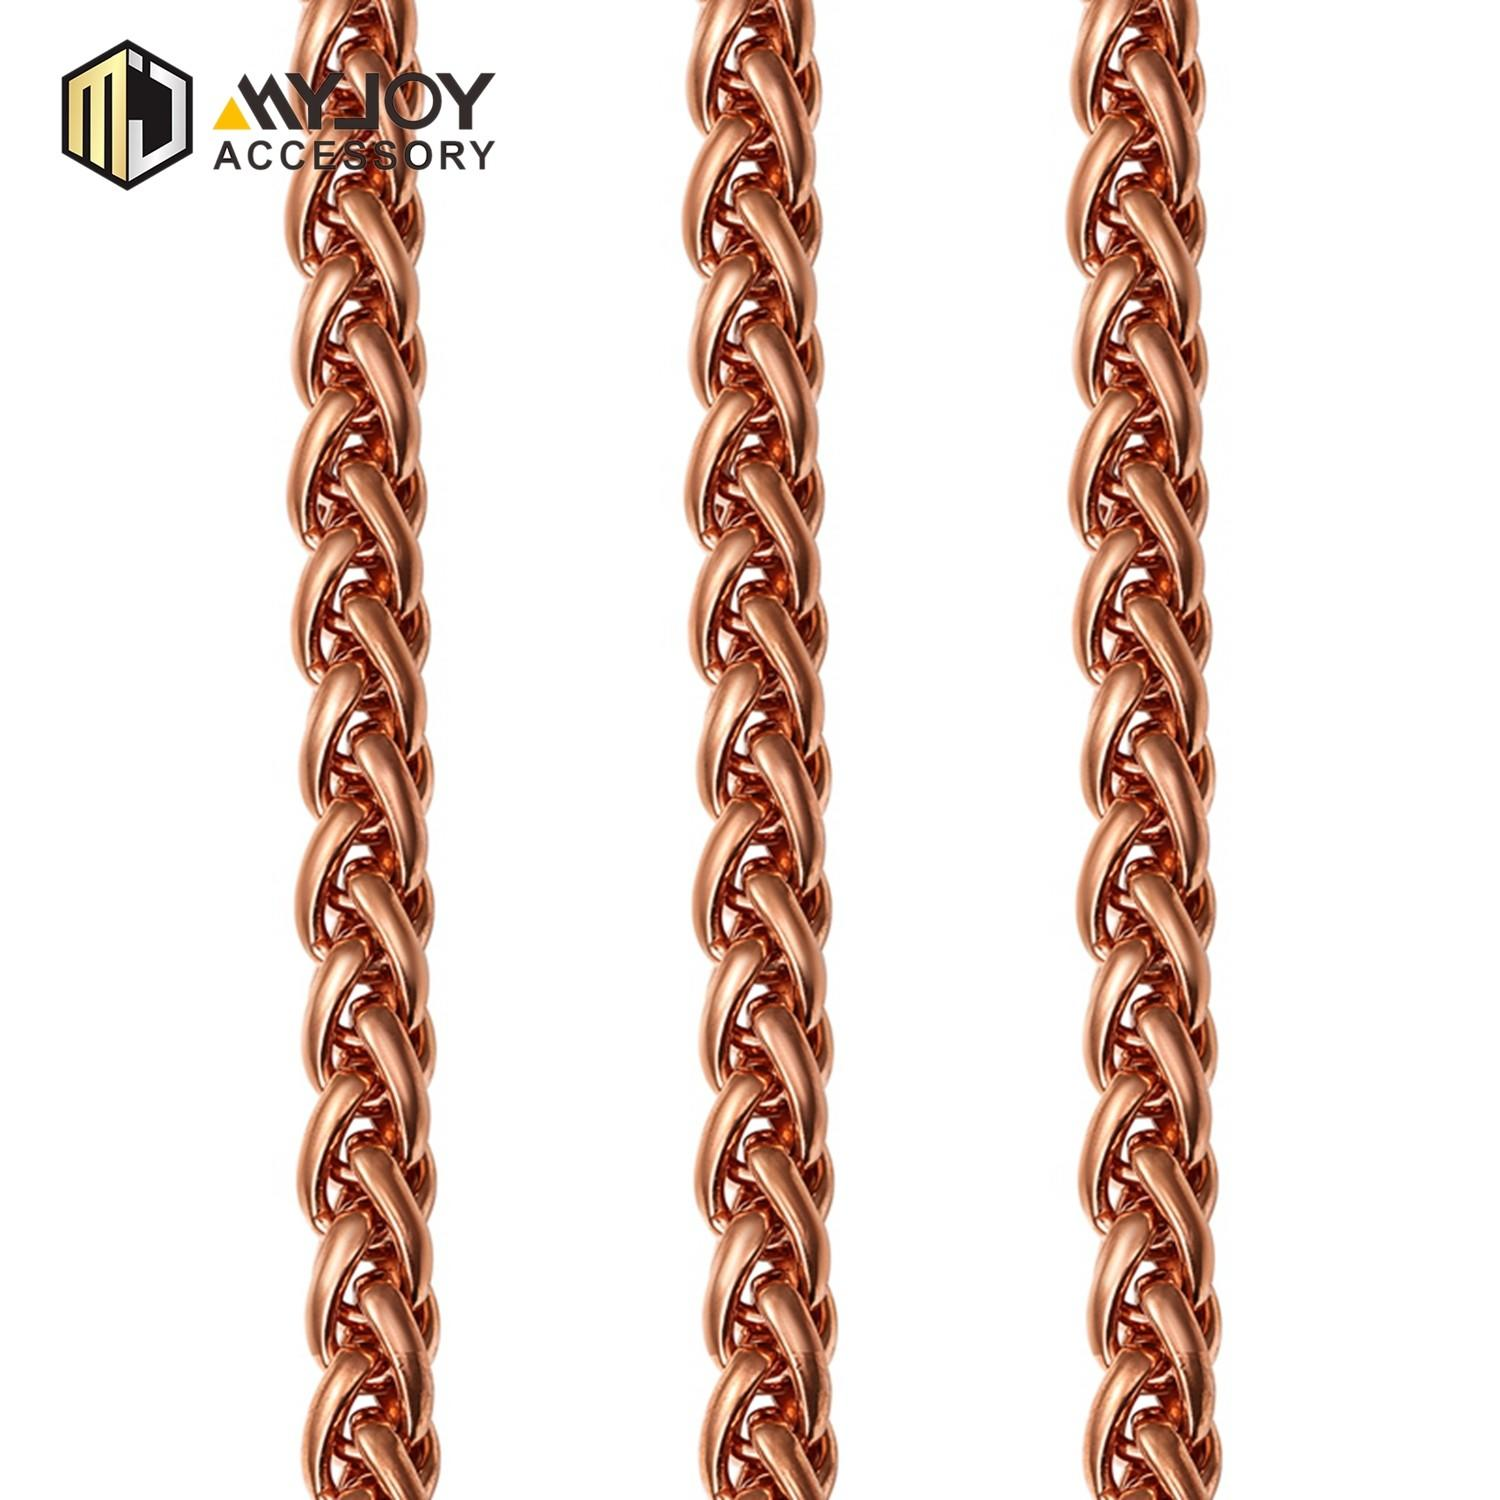 MYJOY new handbag chain strap manufacturers for bags-2